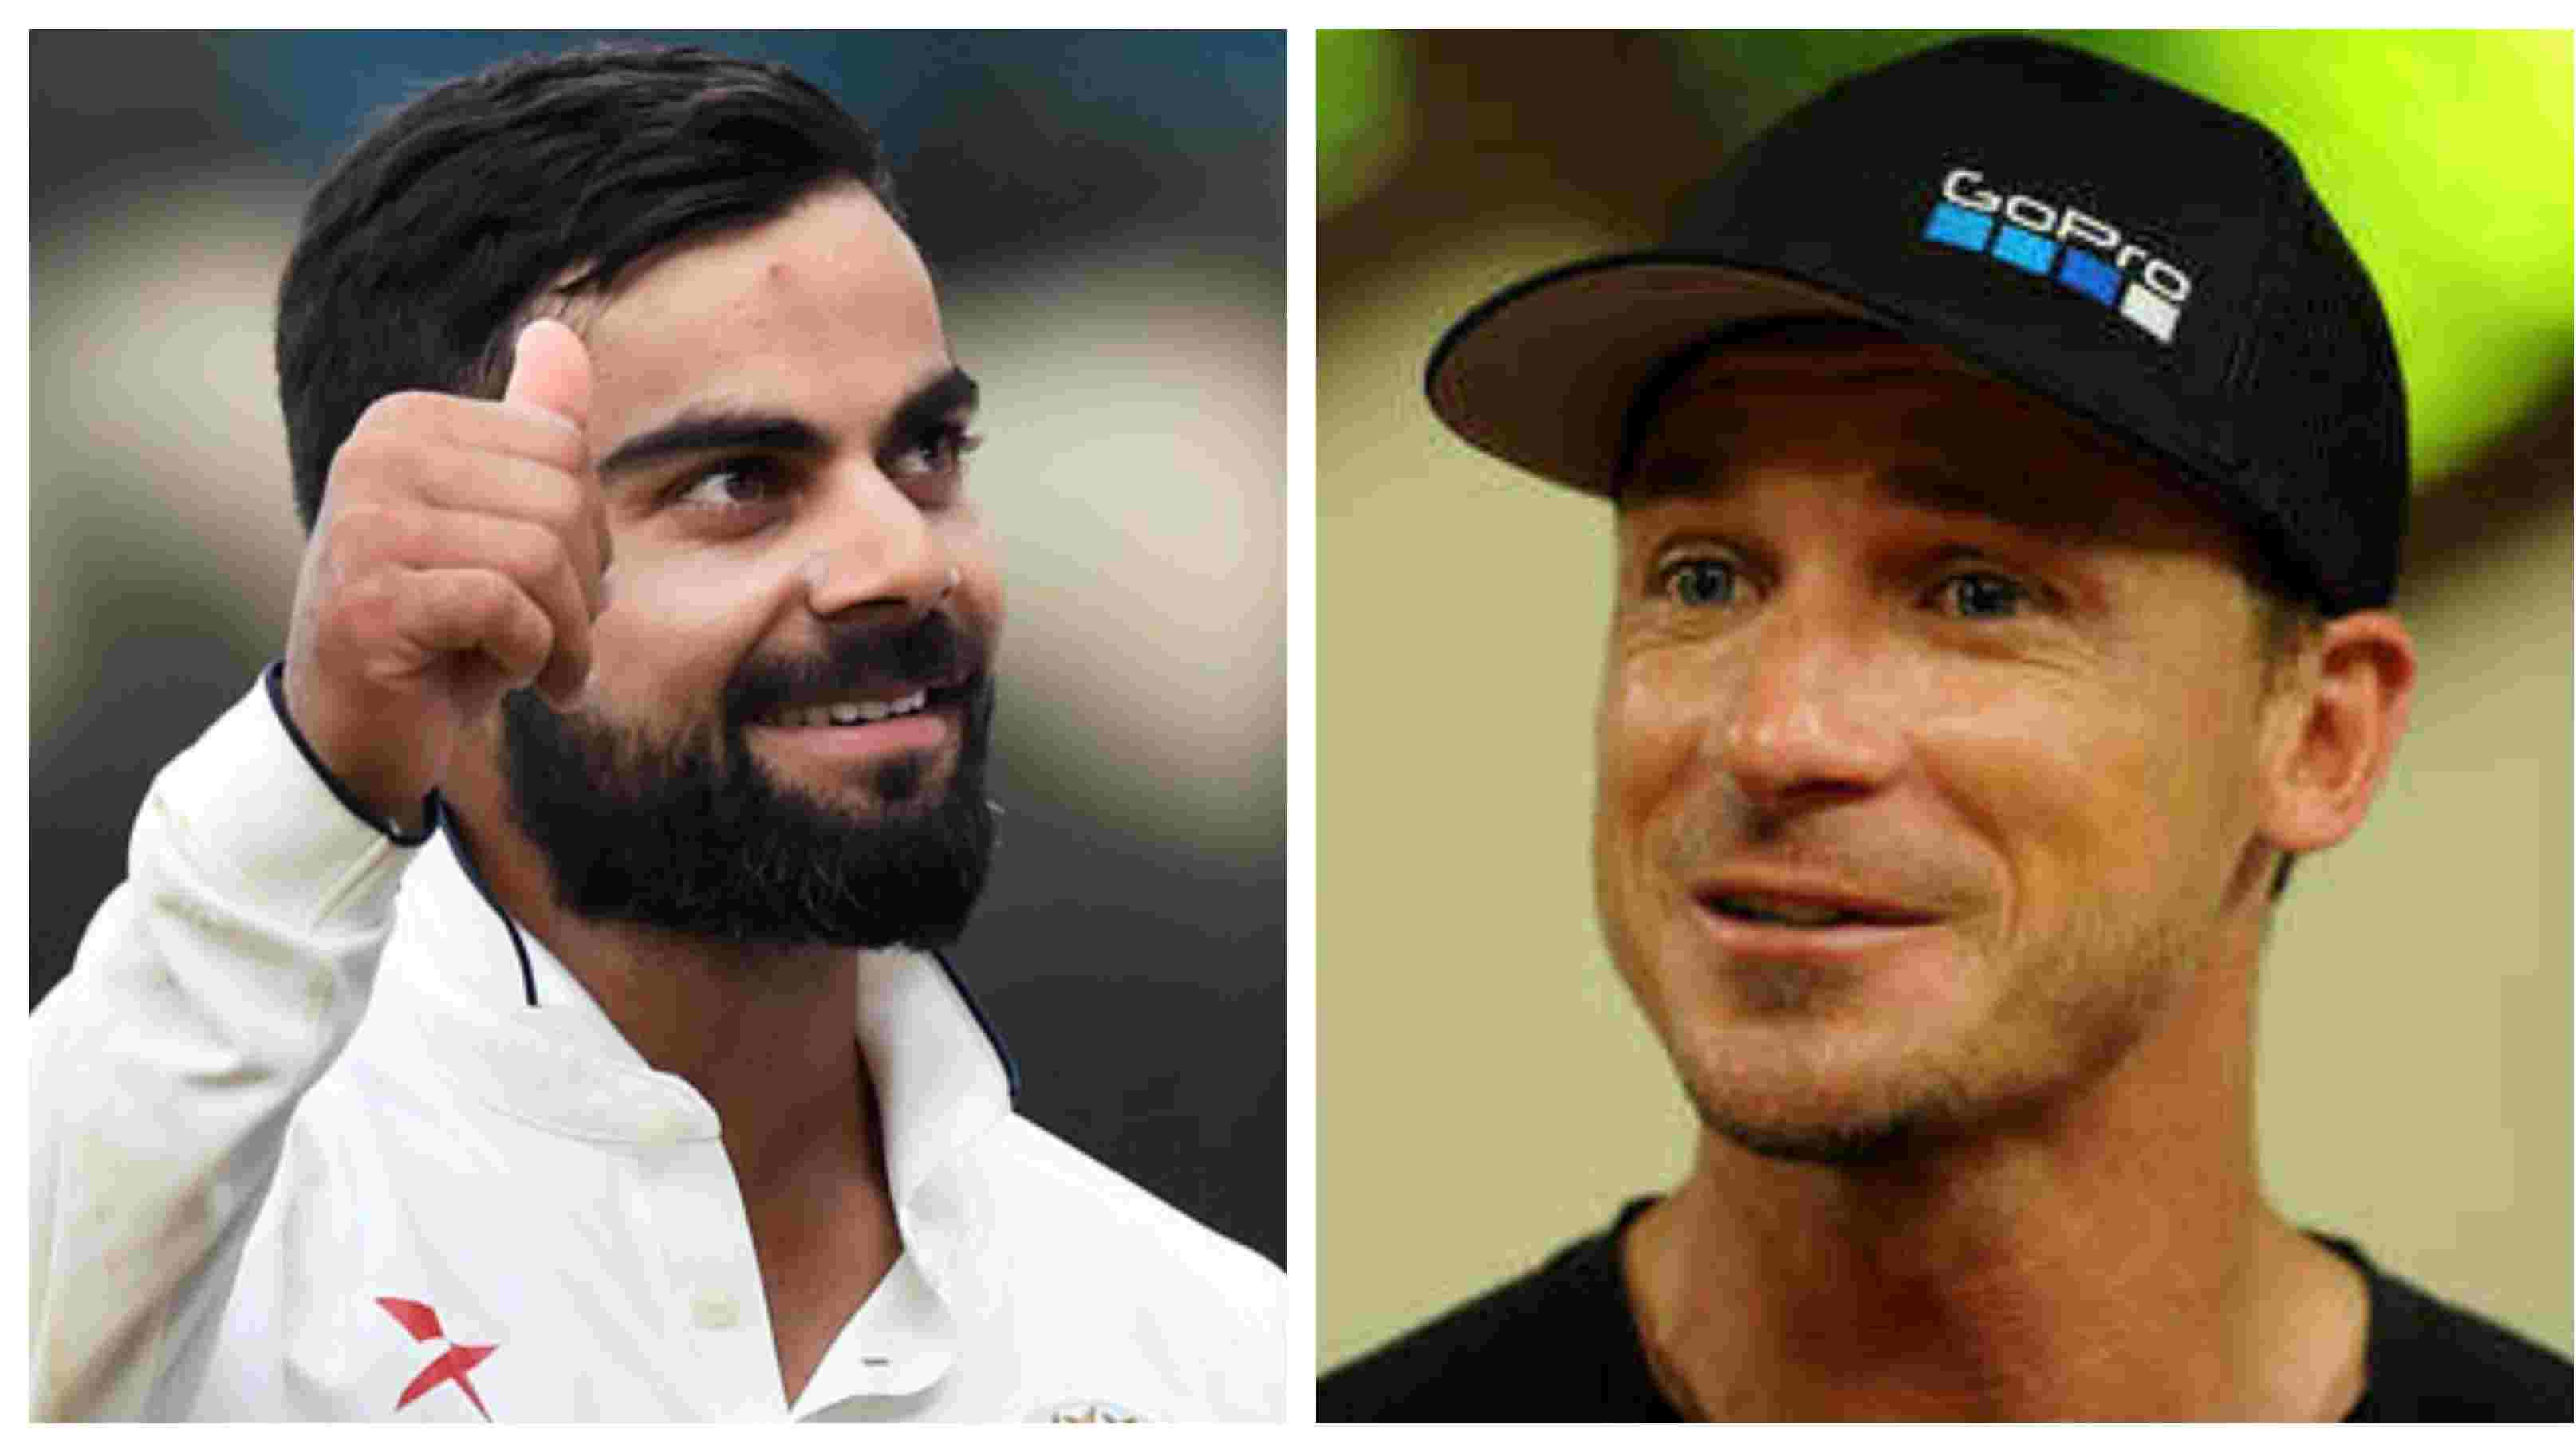 ENG v IND 2018: Dale Steyn backs Virat Kohli to prosper in England Test series